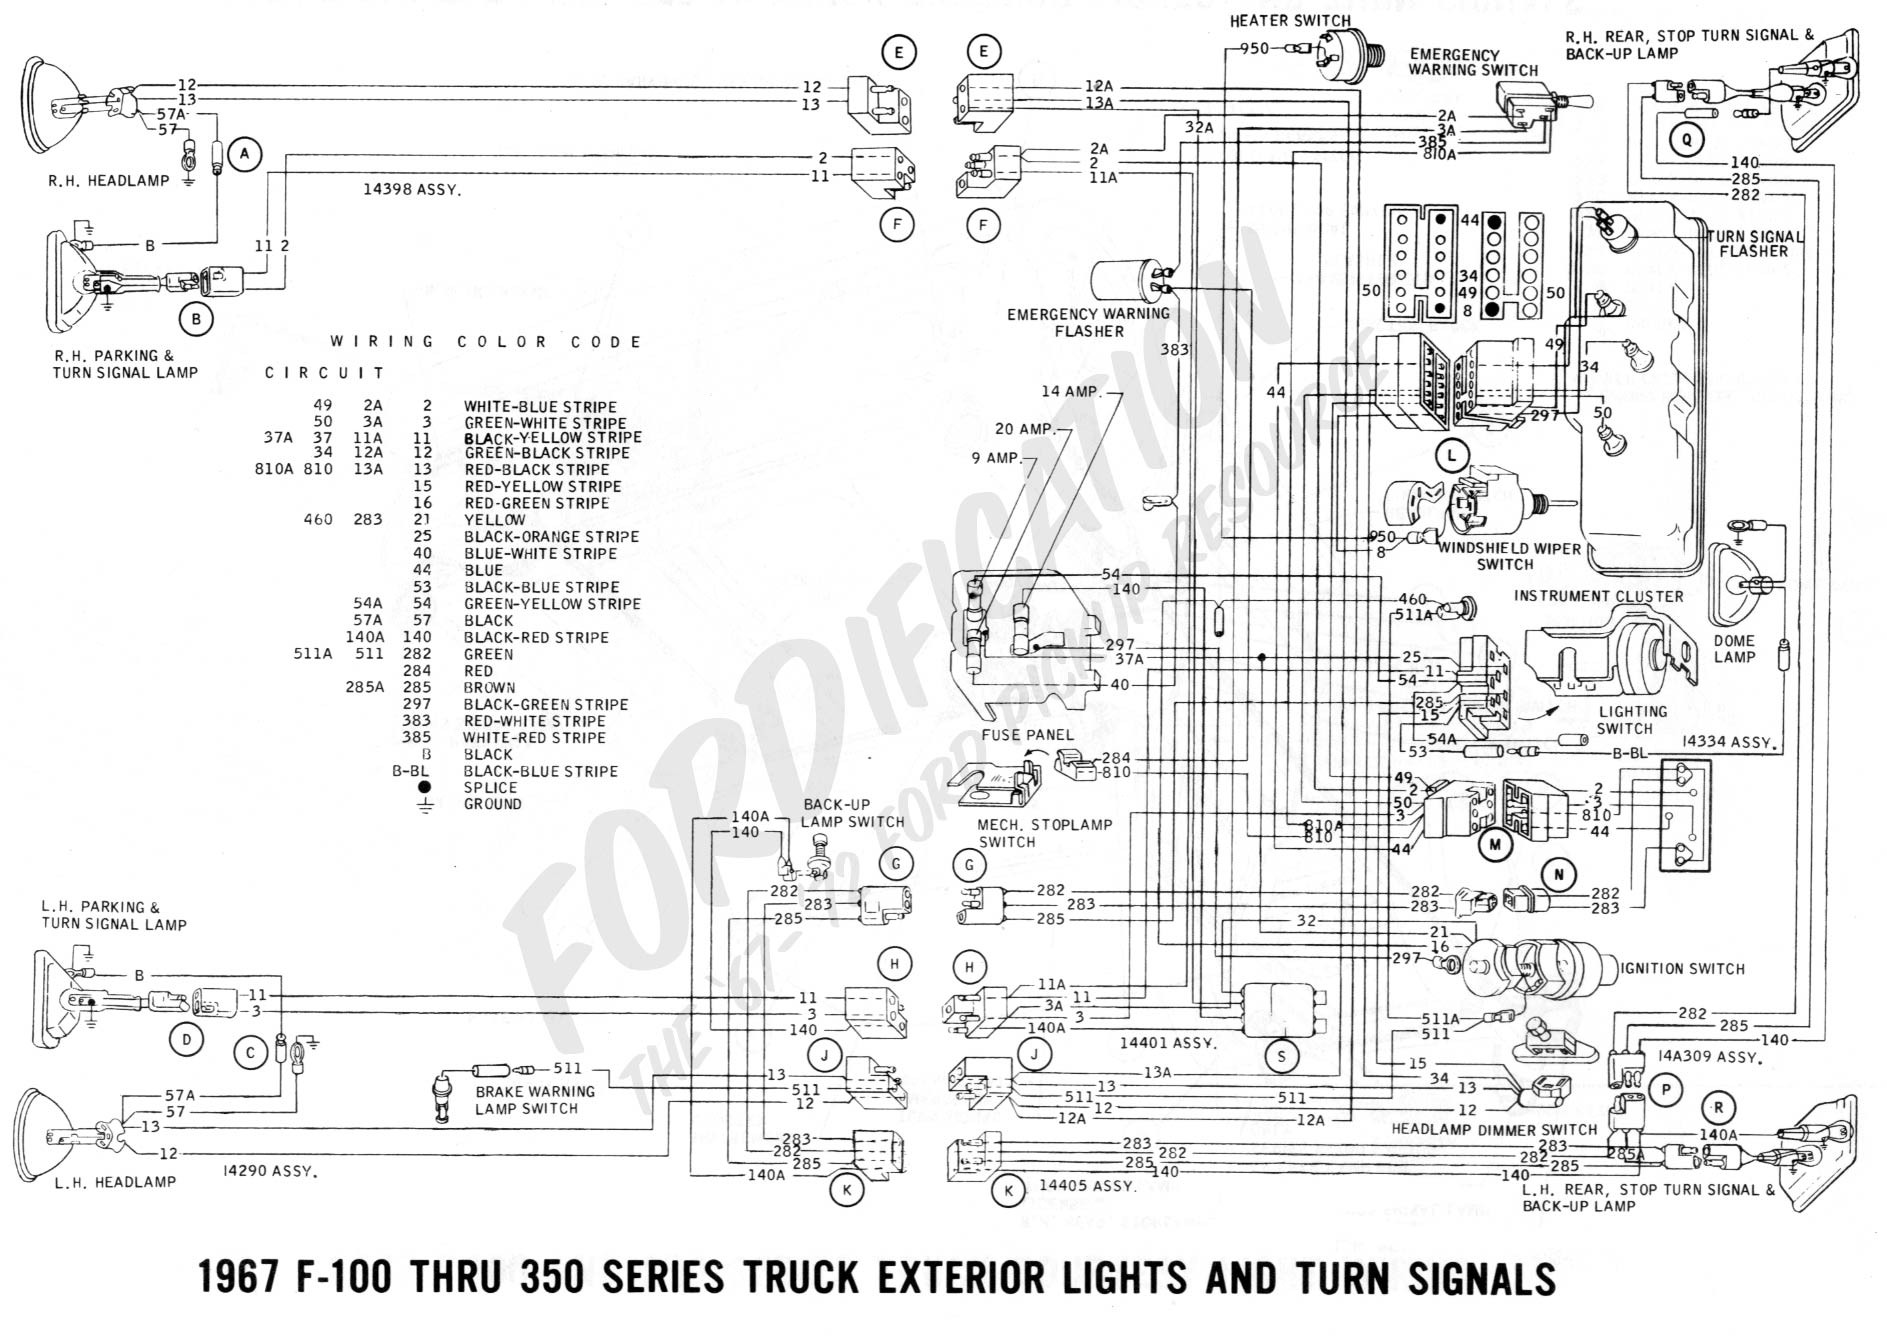 Ford Truck Wiring Schematics - Wiring Diagram Server road-match -  road-match.ristoranteitredenari.it | 1969 Ford F150 Wiring Diagram |  | Ristorante I Tre Denari Manerbio